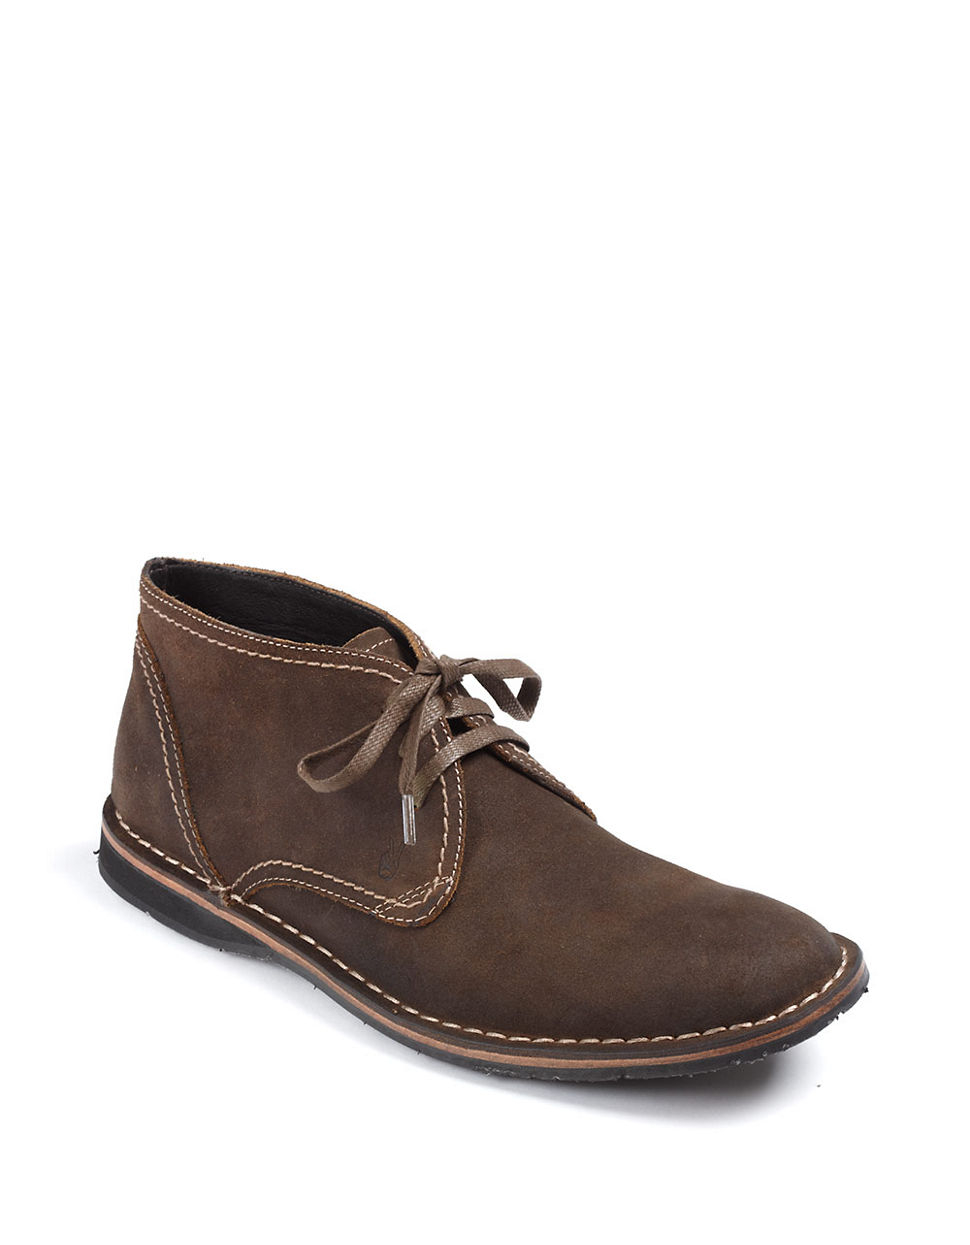 varvatos suede chukka boots in brown for